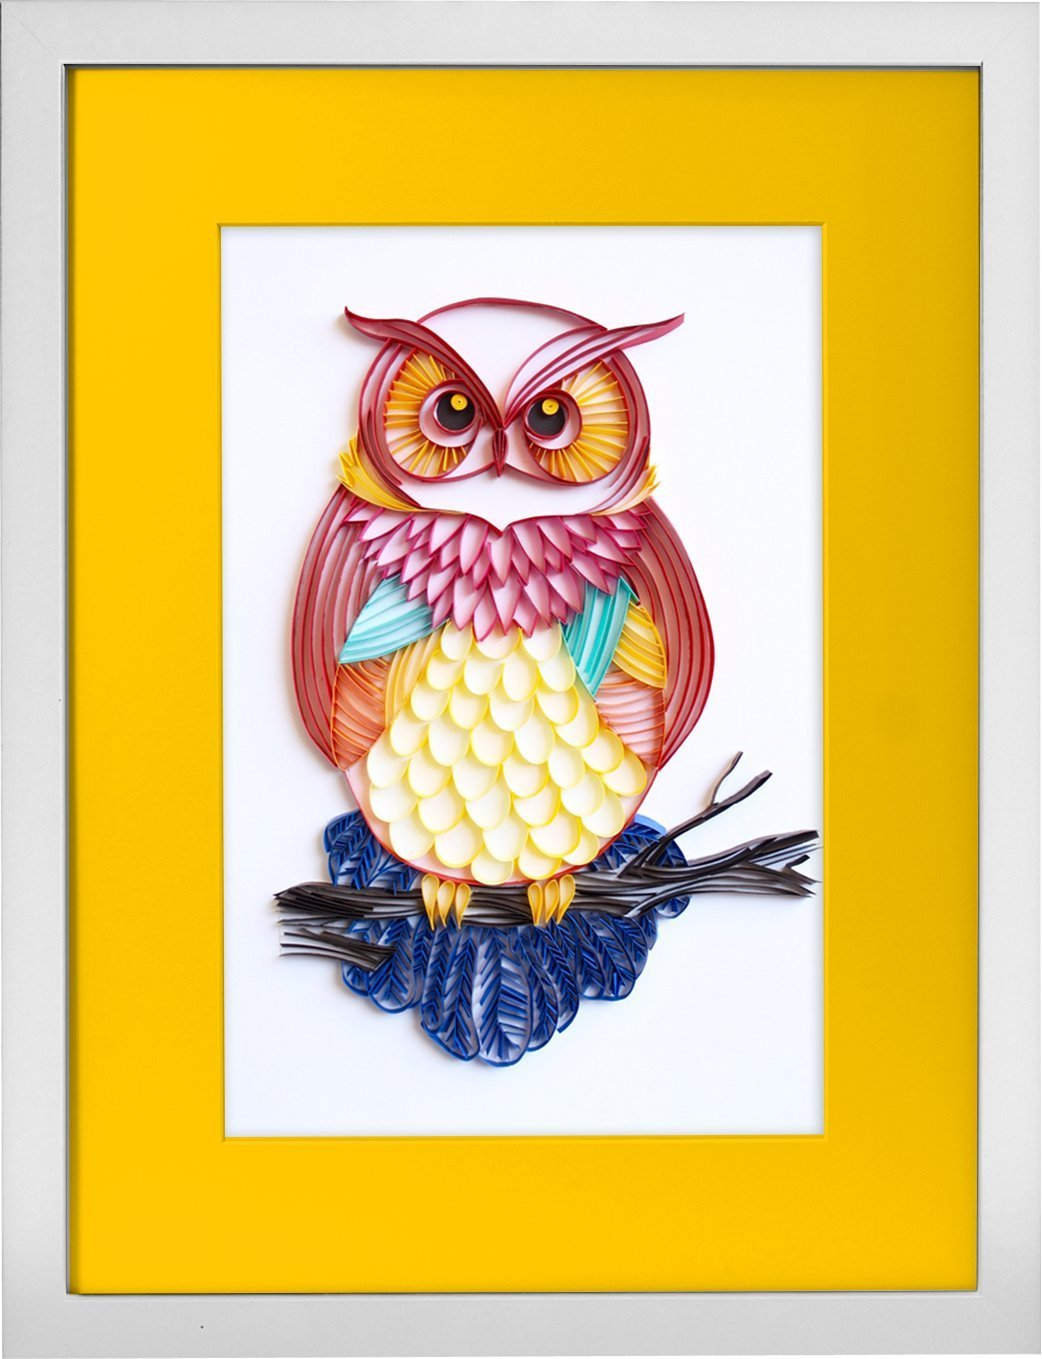 The Great Horned Owl - Modern Paper Quilled Wall Art for Home Decor (one of a kind paper quilling handcrafted piece made with love by an artist in California)